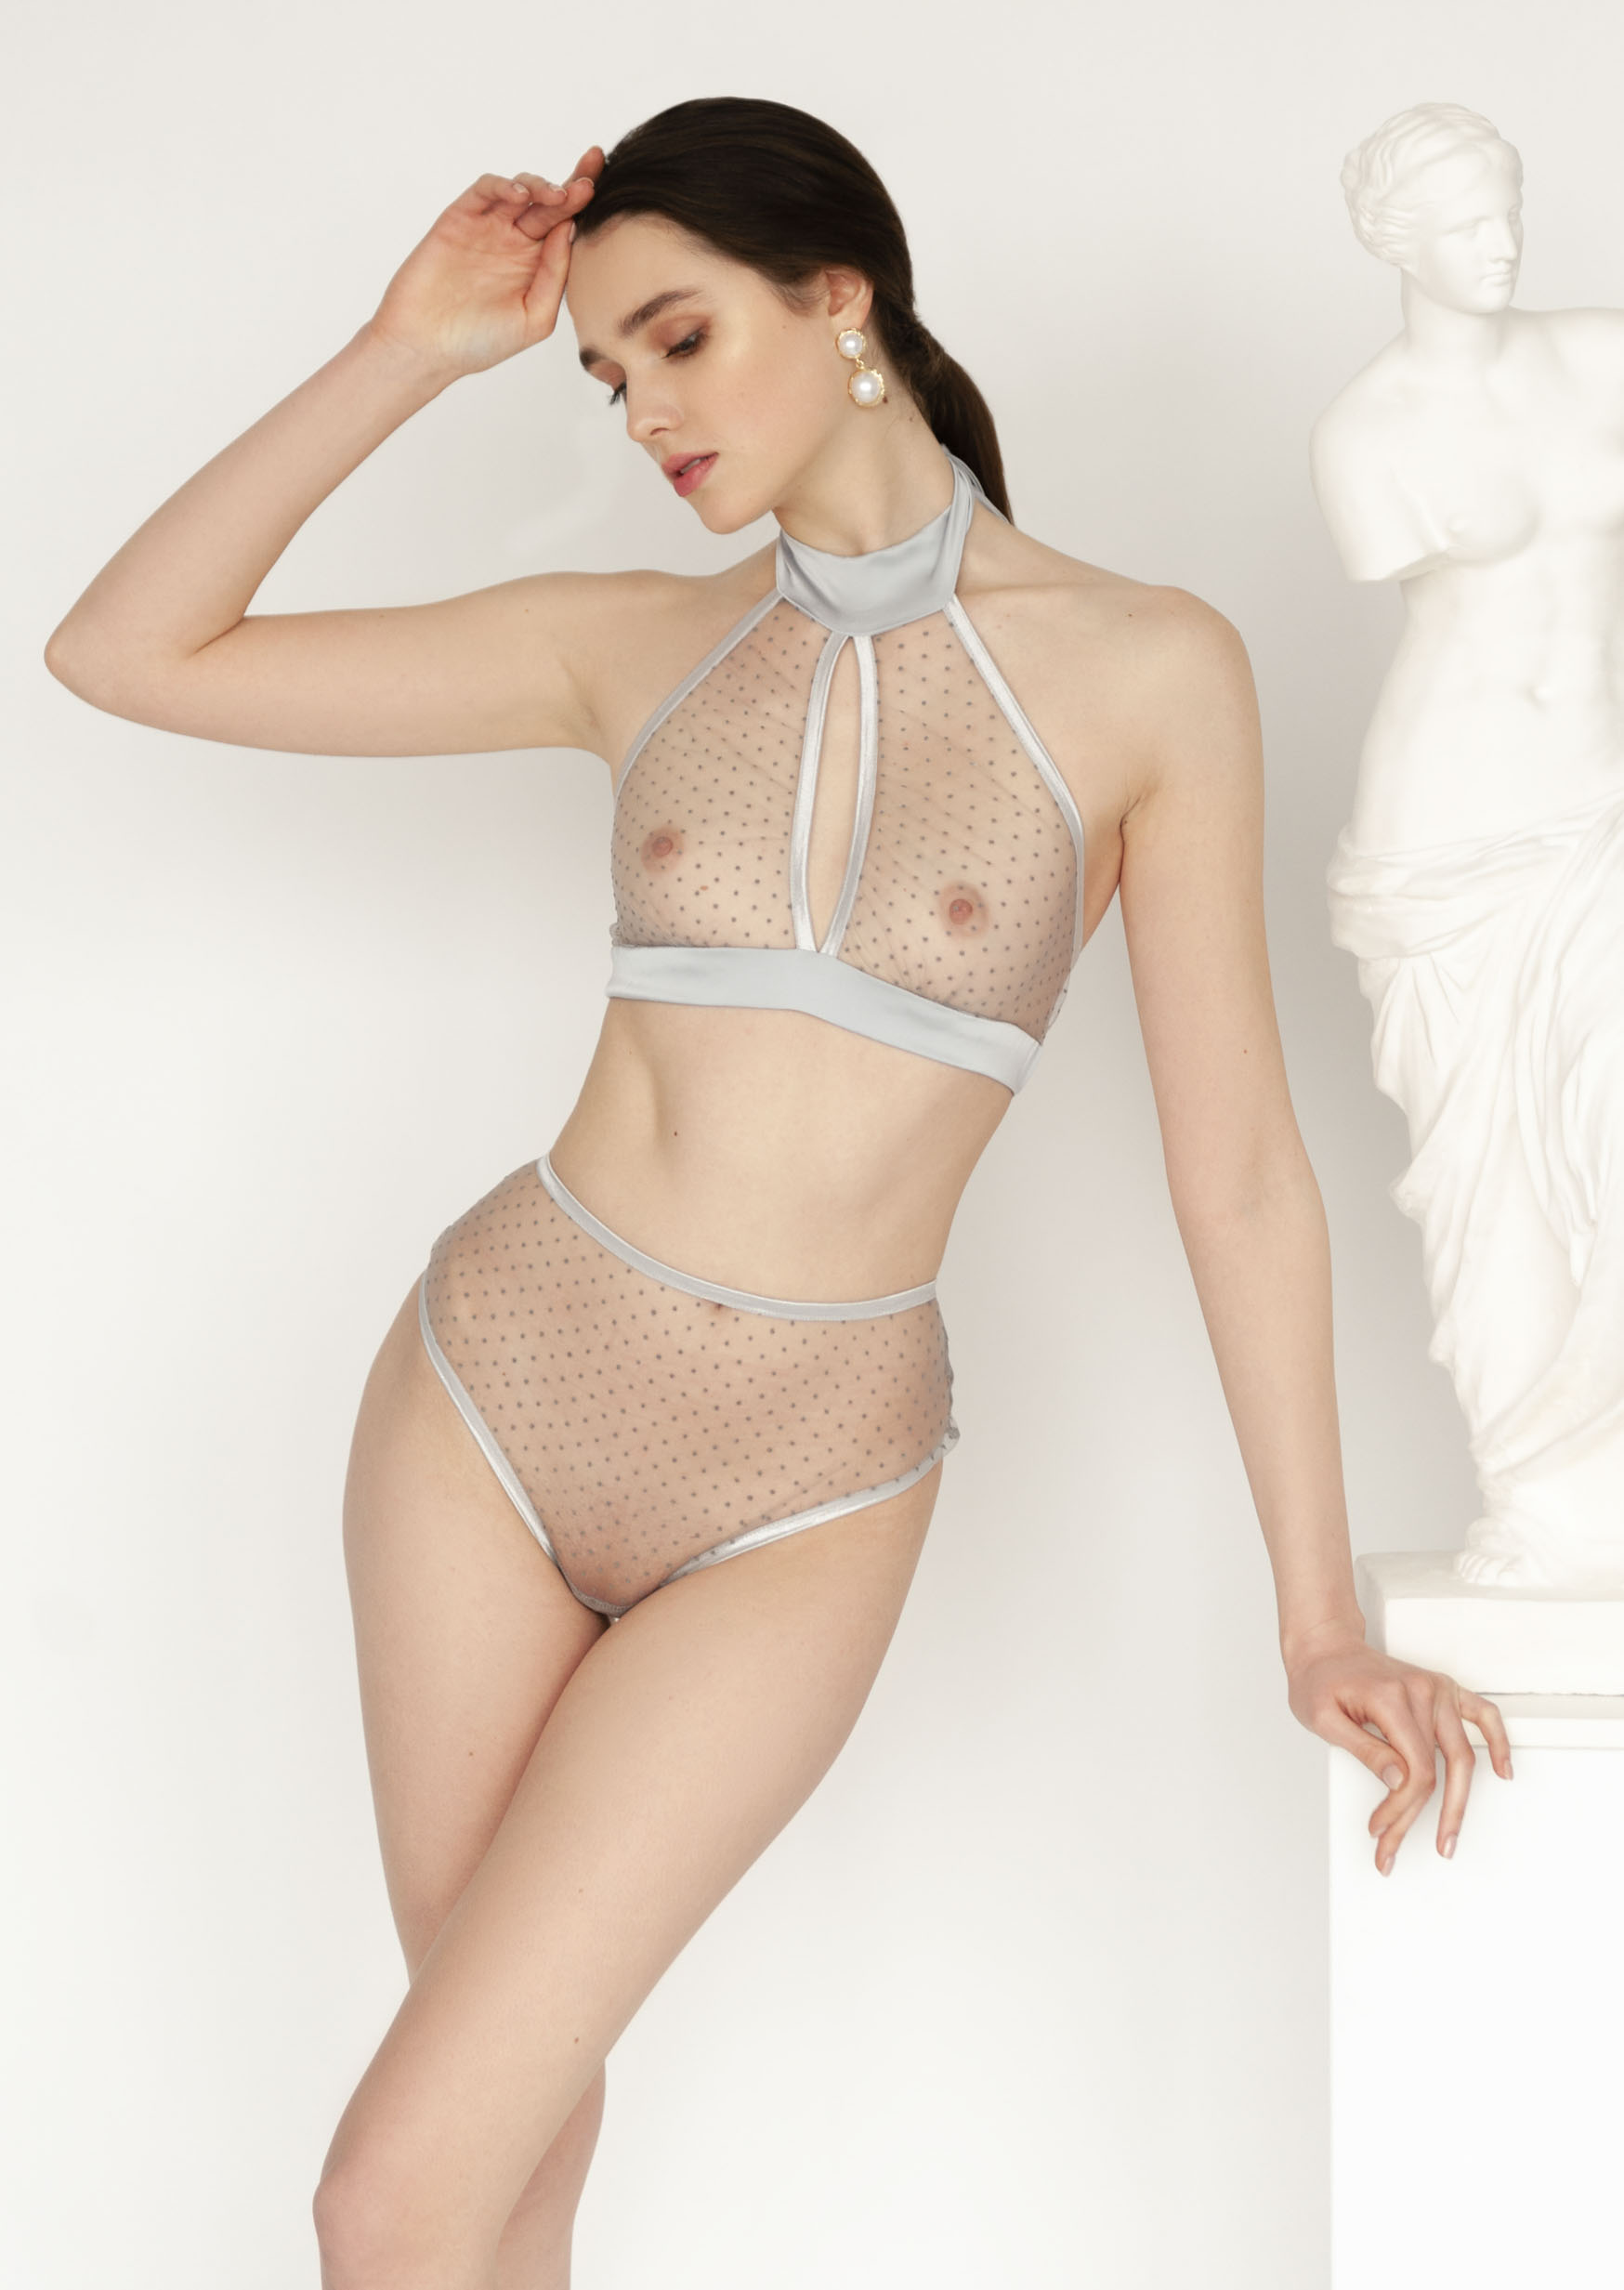 Sexy grey polka dot lingerie set clear panties with underwired bra